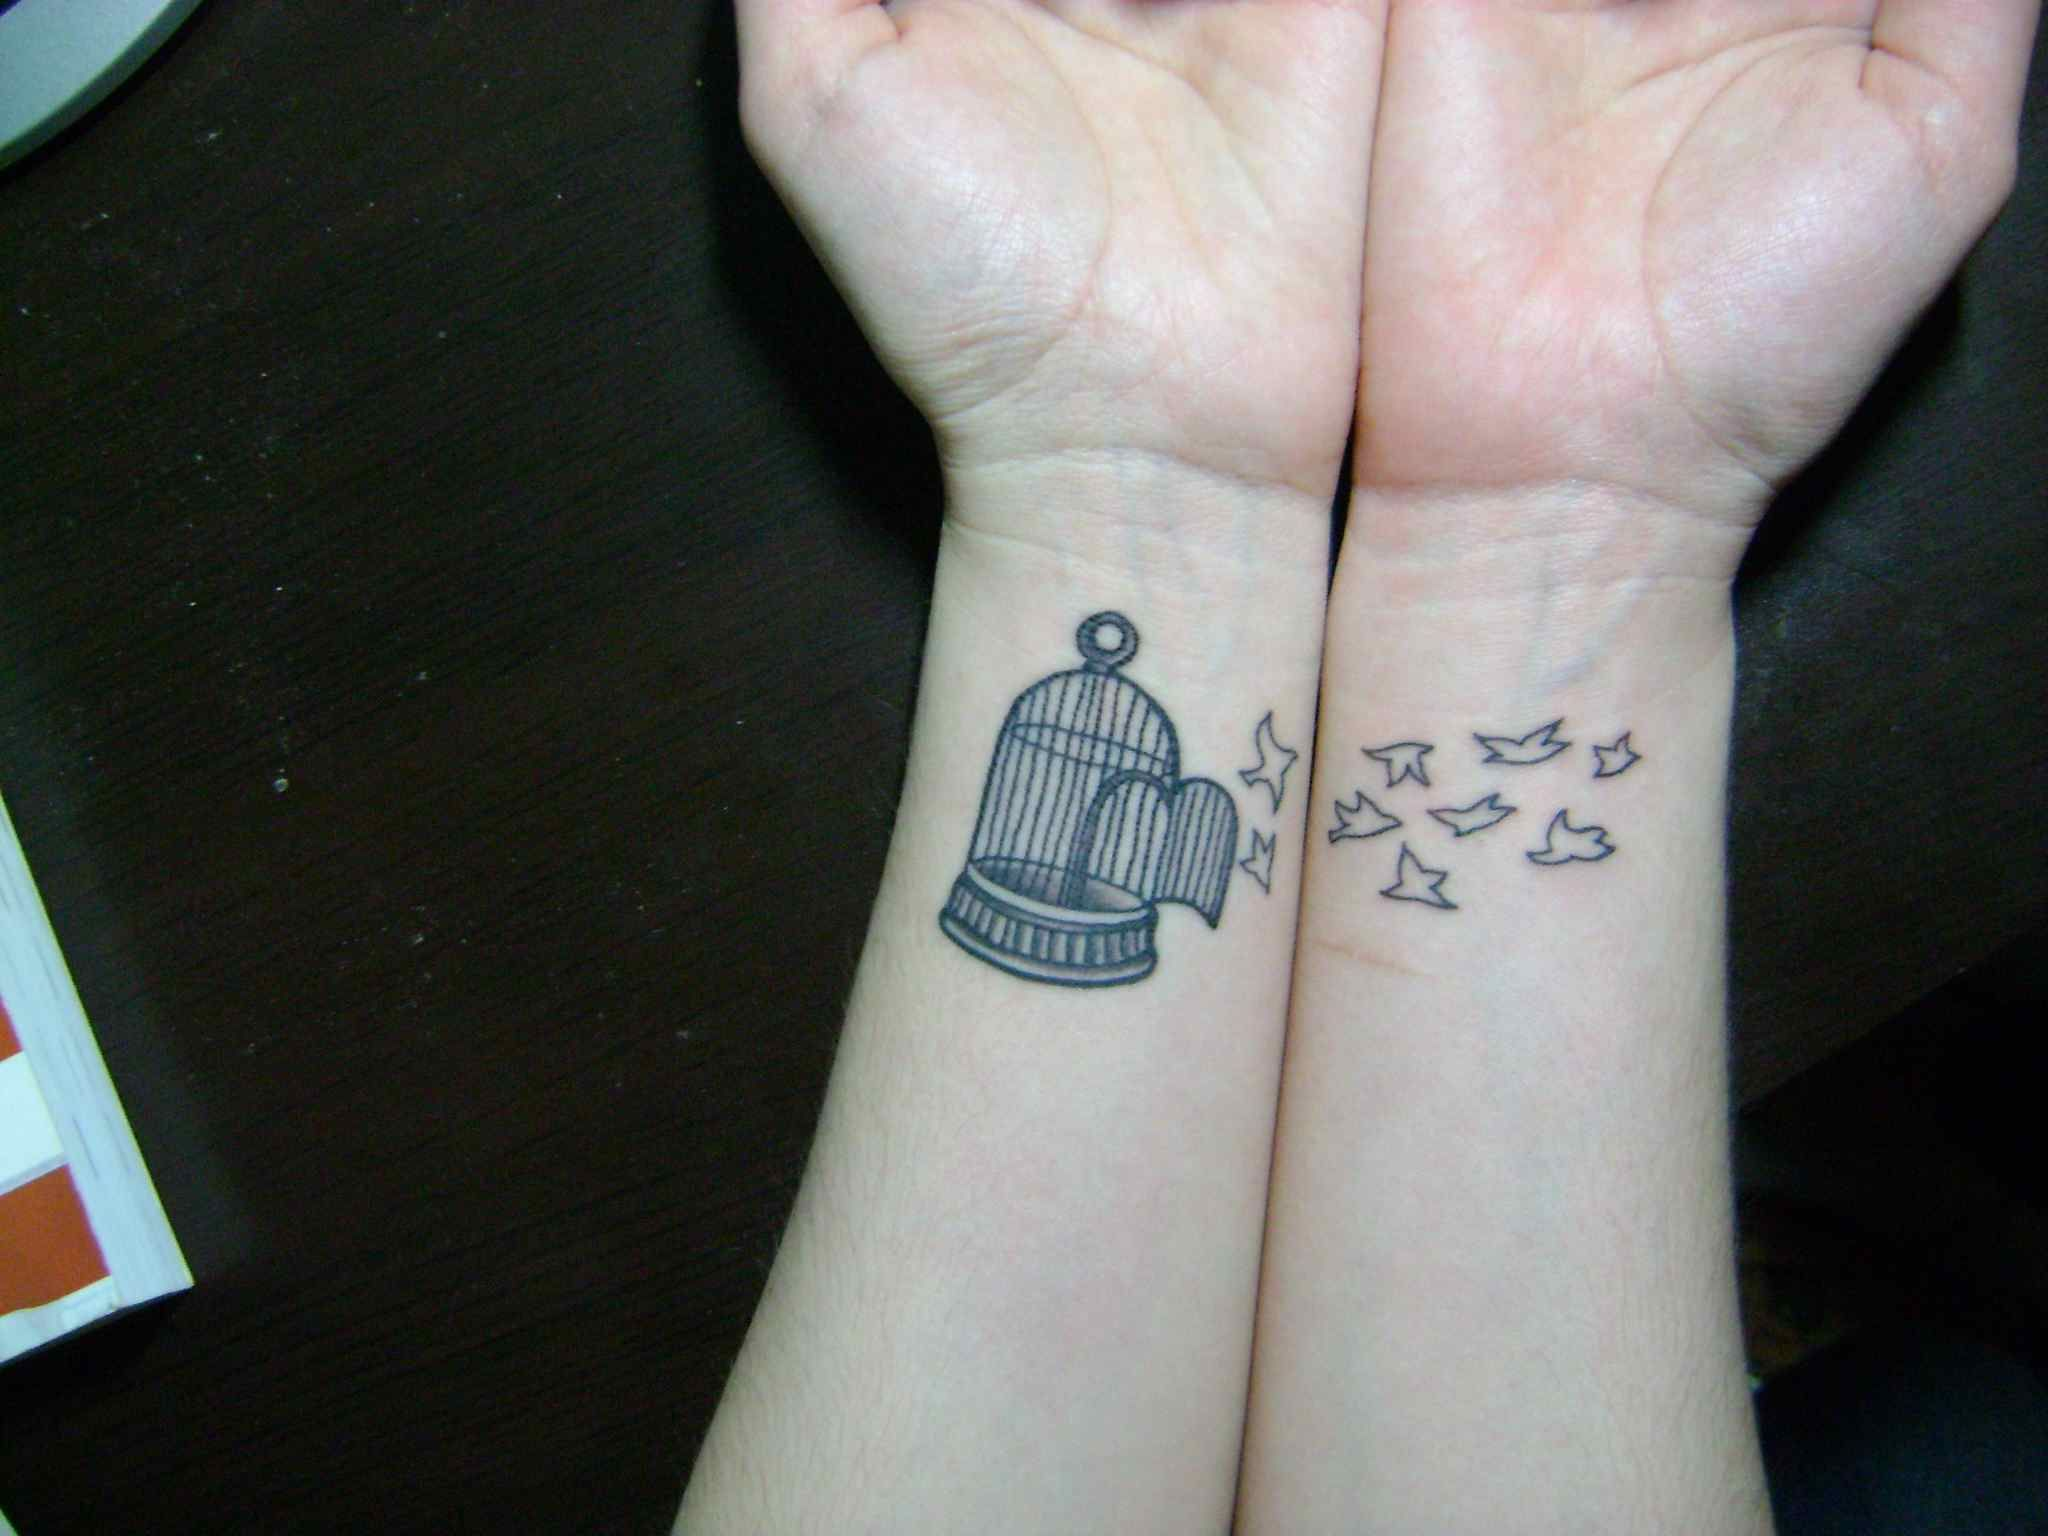 cute tattoos for your wrist cool wrist tattoos designs and ideas tattoos pinterest. Black Bedroom Furniture Sets. Home Design Ideas